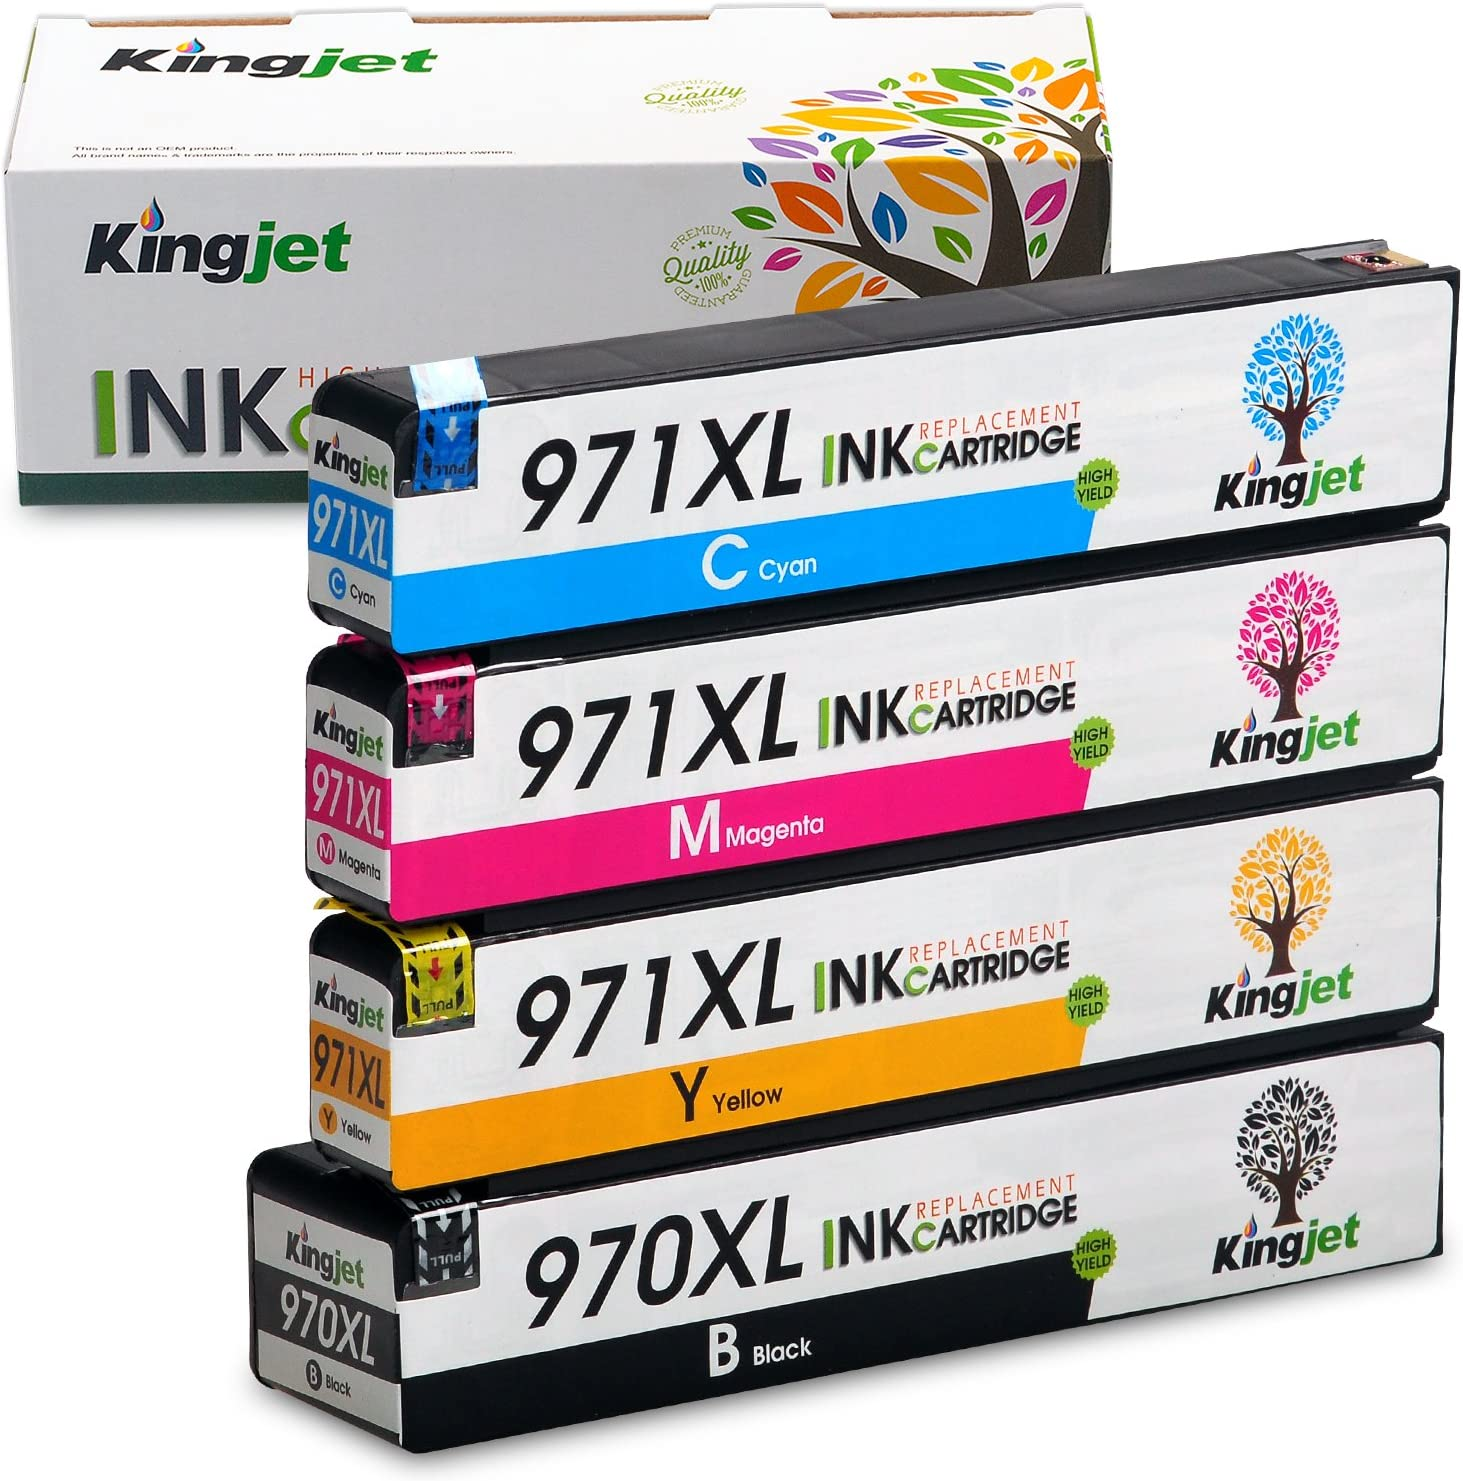 970XL 971XL Ink Cartridge, Kingjet Compatible Replacements Work with Officejet Pro X576dw X451dn X451dw X476dw X476dn X551dw Printers, (1 Set)